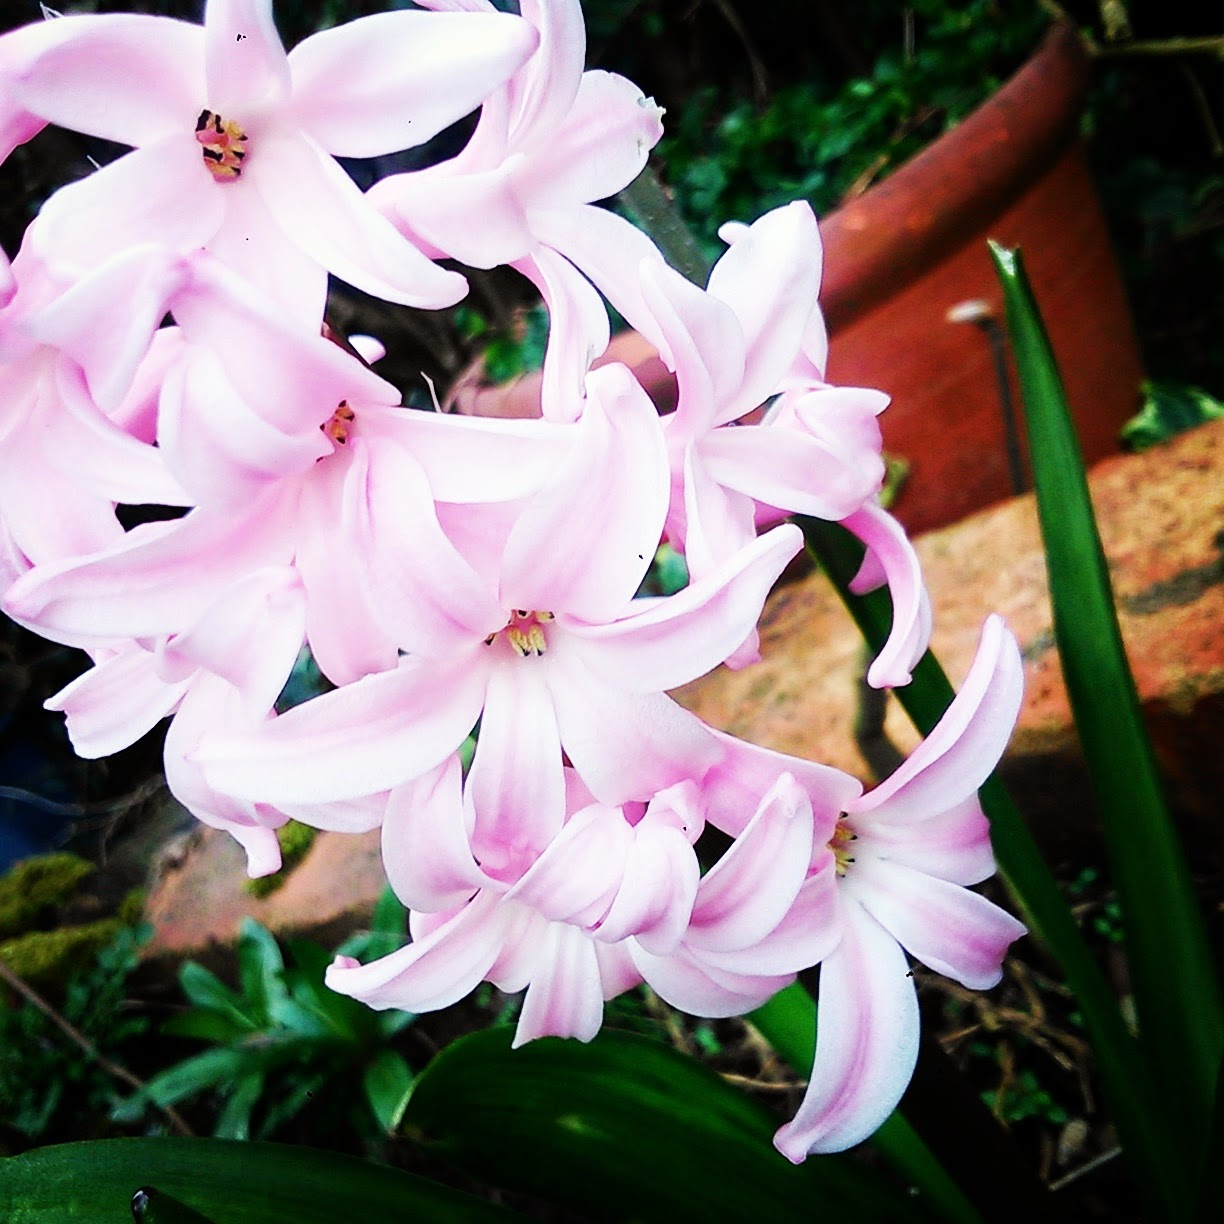 beautiful pale pink flowers in a british garden. Pink hyacinths.